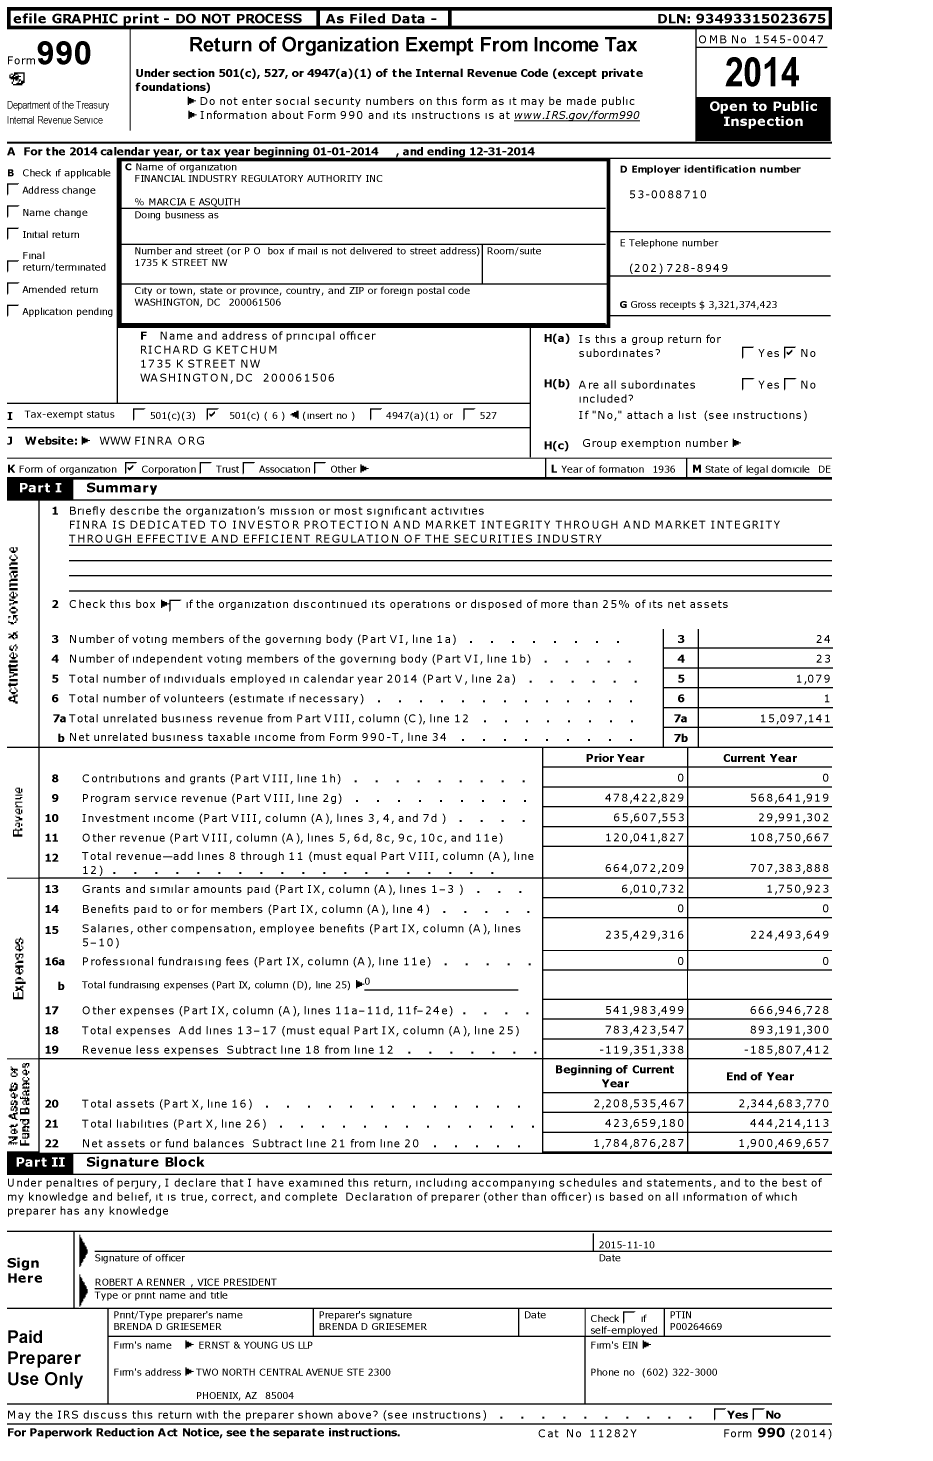 Image of first page of 2014 Form 990O for Financial Industry Regulatory Authority (FINRA)